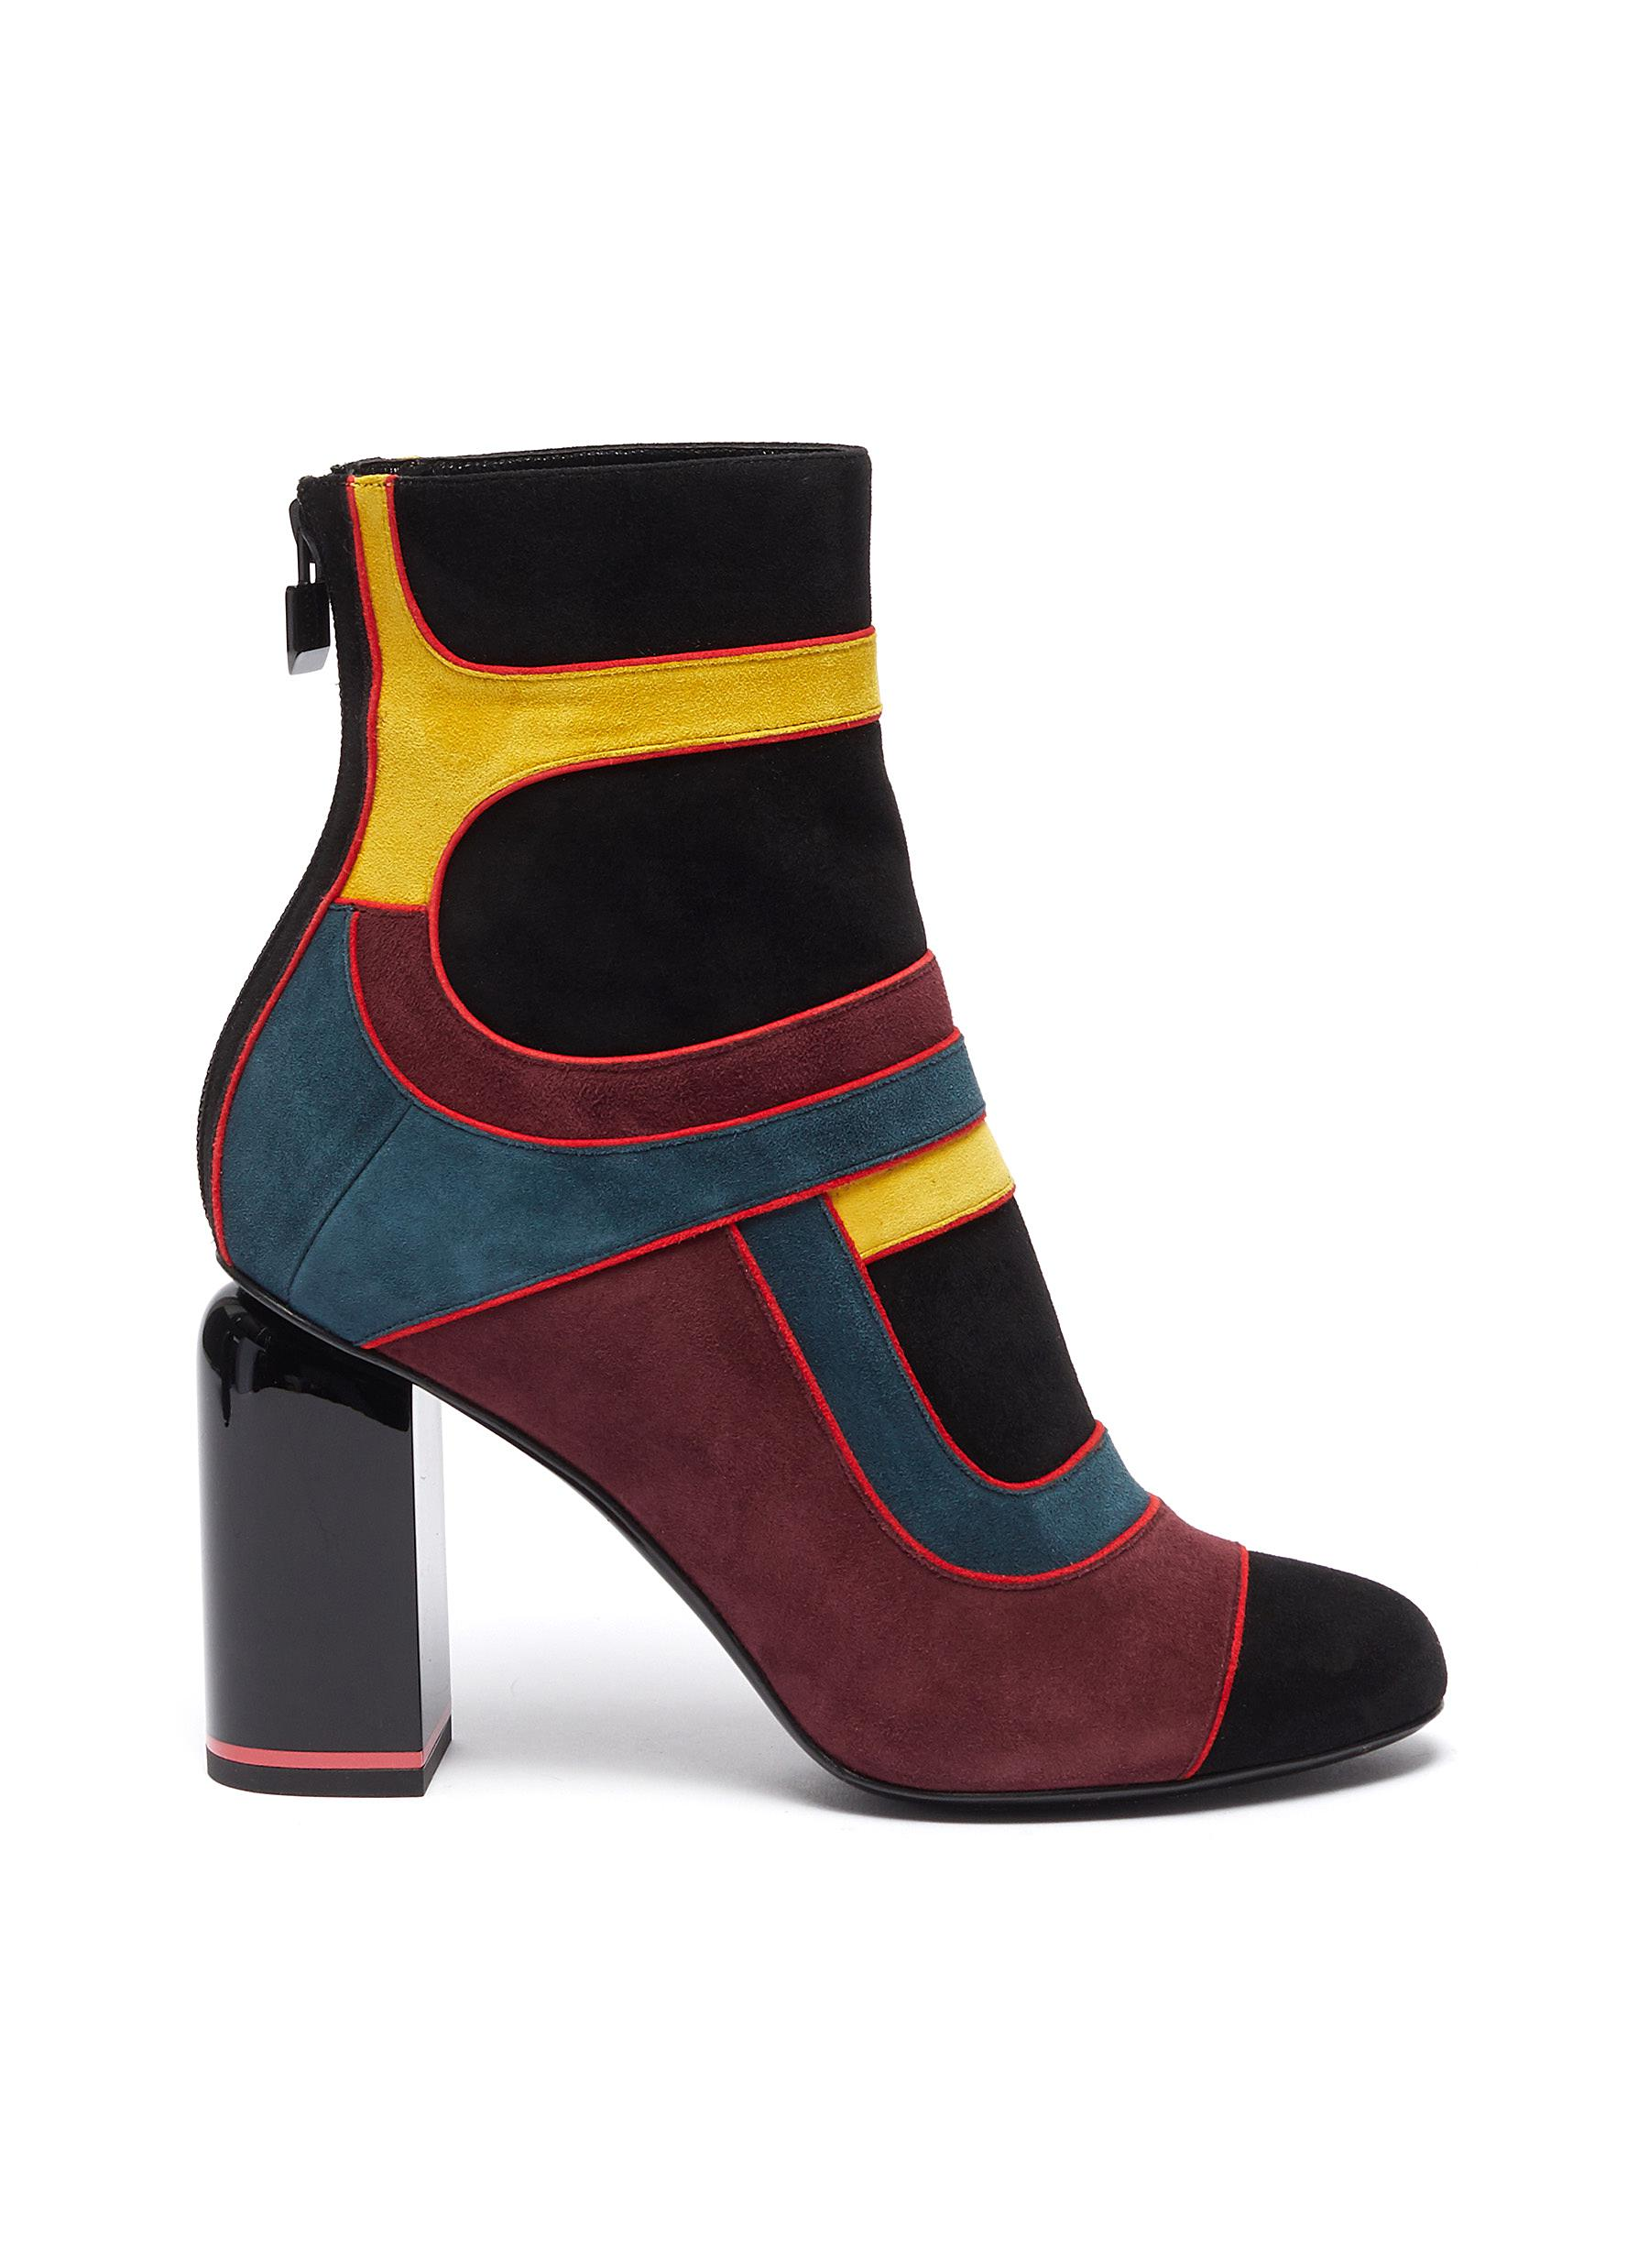 Pierre Hardy Boots Machina suede patchwork ankle boots